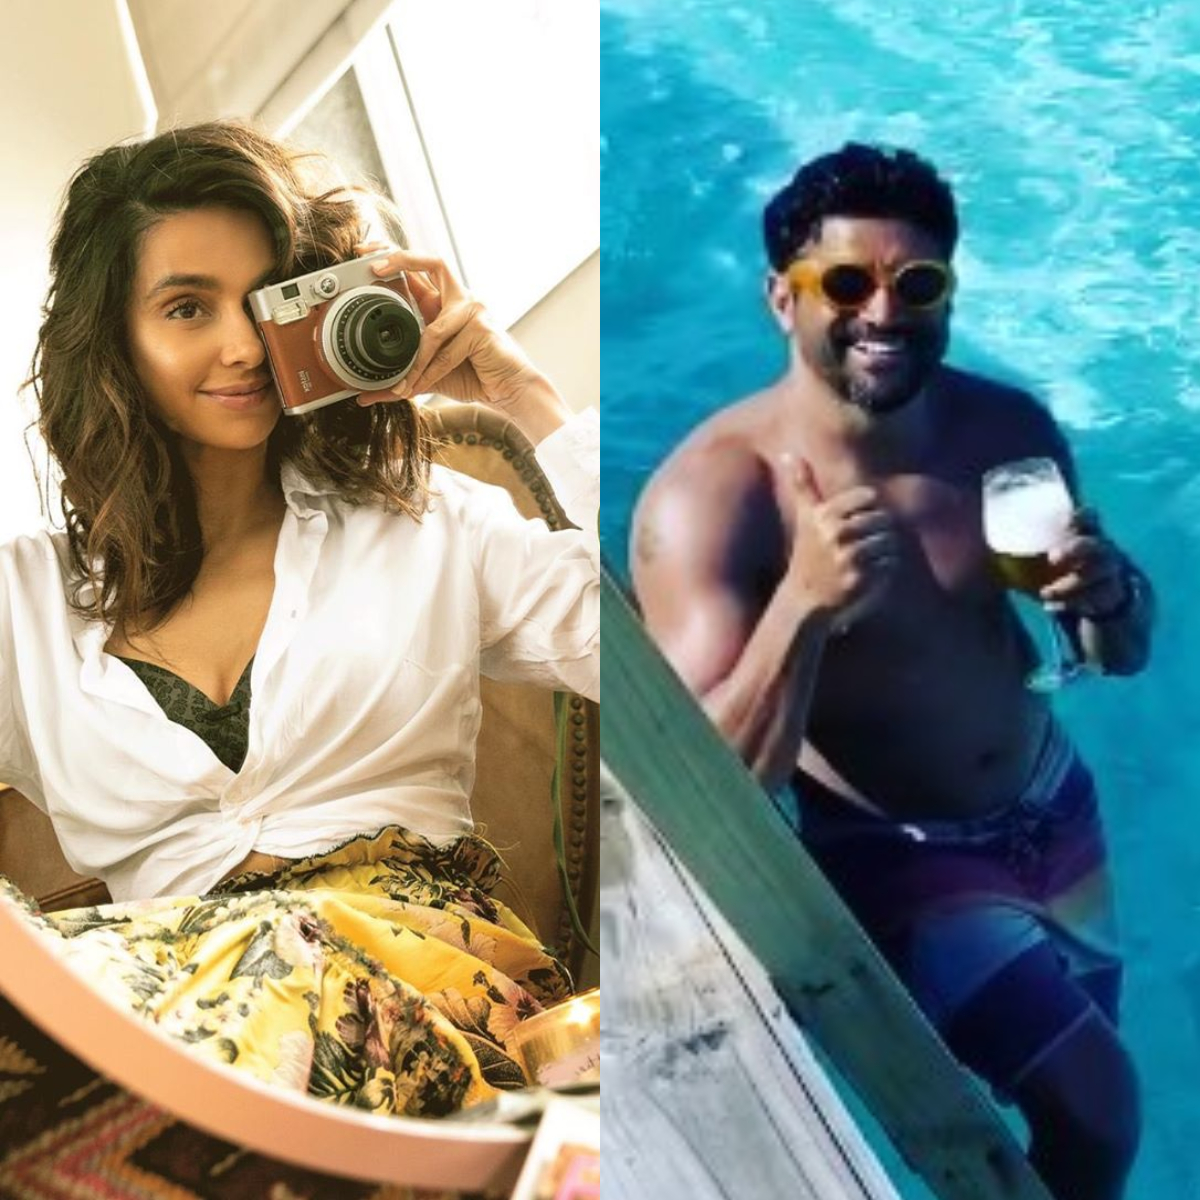 Farhan Akhtar credits girlfriend Shibani Dandekar for the 'splashback' video from Maldives vacay; WATCH